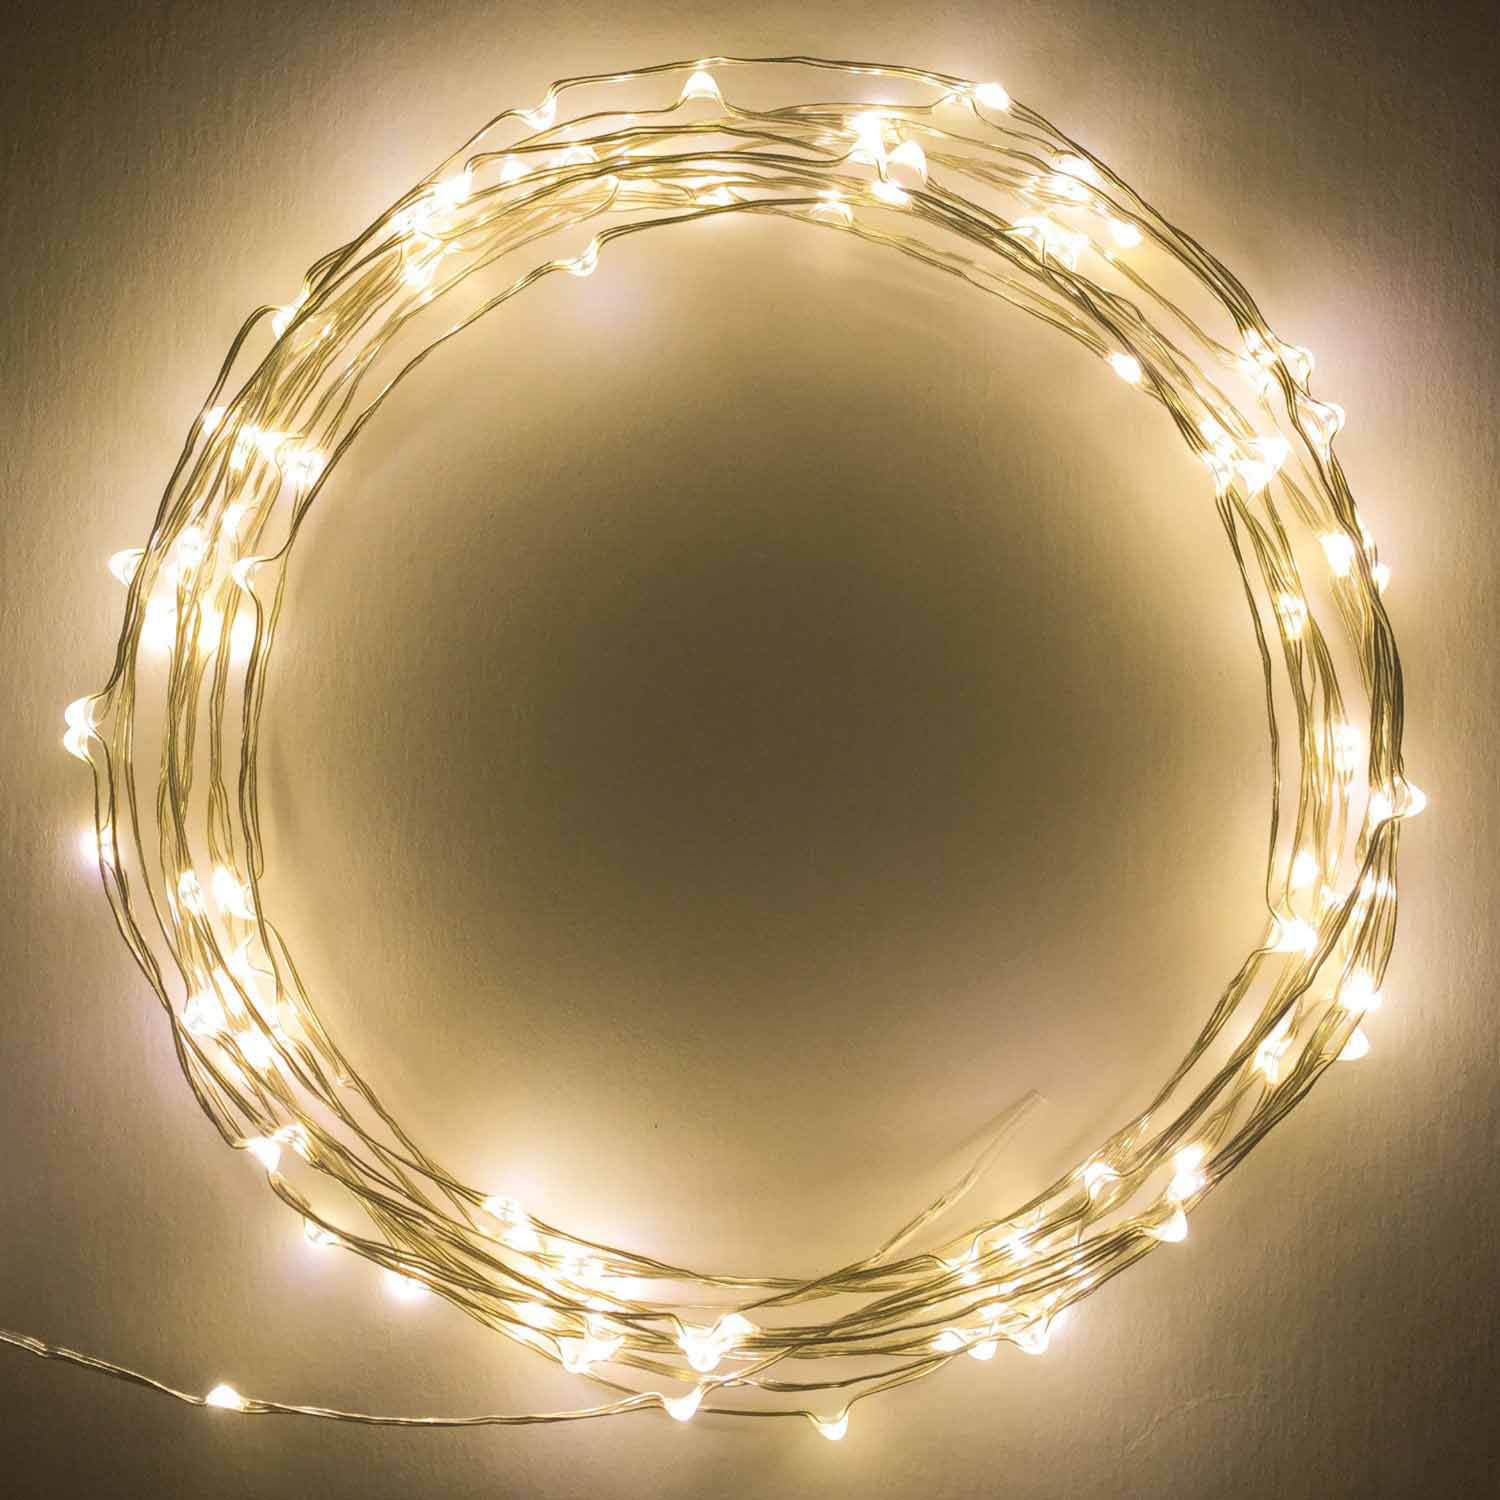 Brightech Warm White LED Starry String Lights, 20' on a Flexible Wire, 120 Individually-Mounted LEDs